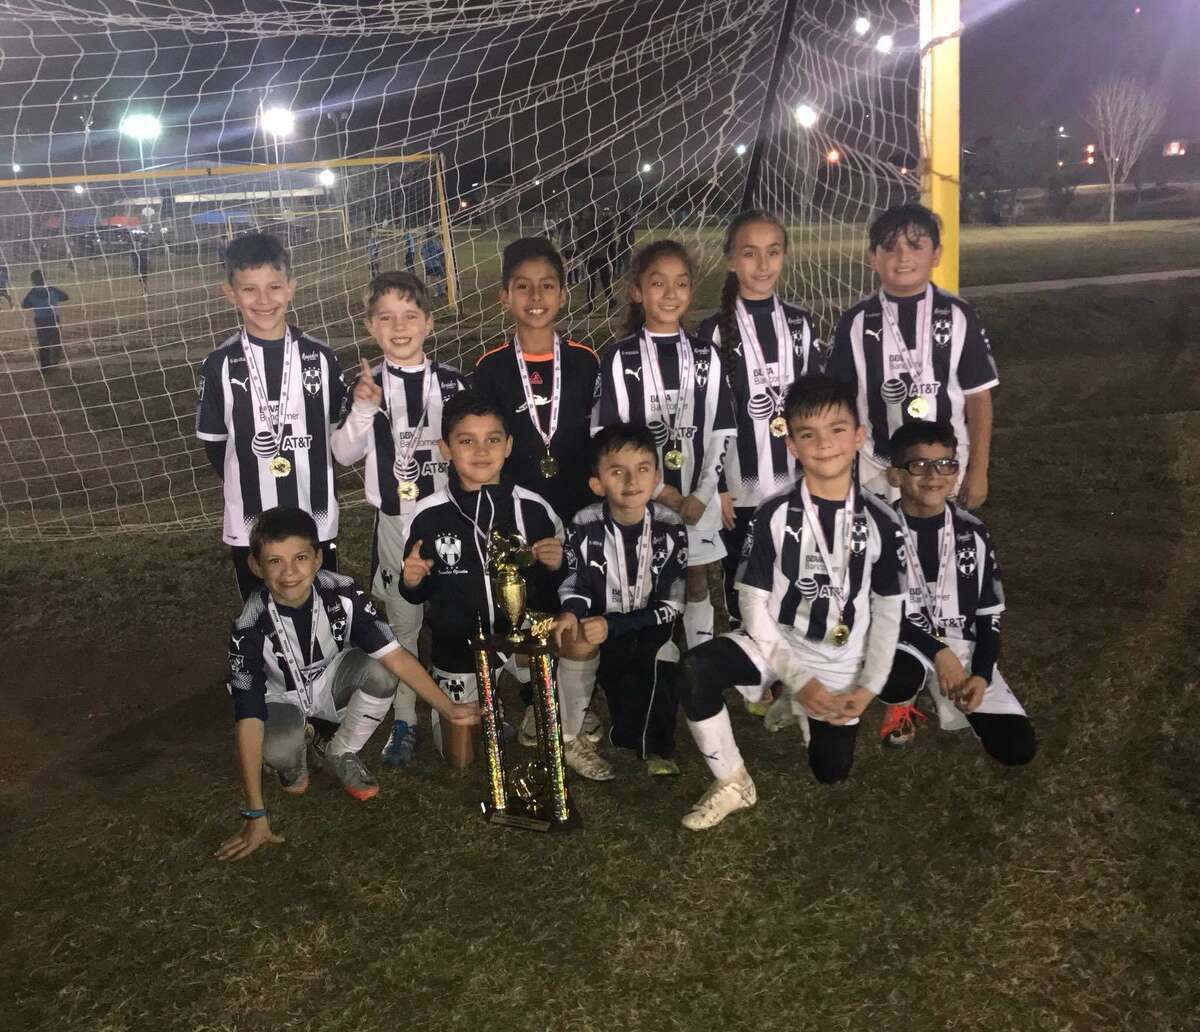 The Rayados 2009 blue team won the 7 Flags Elite soccer league championship final.